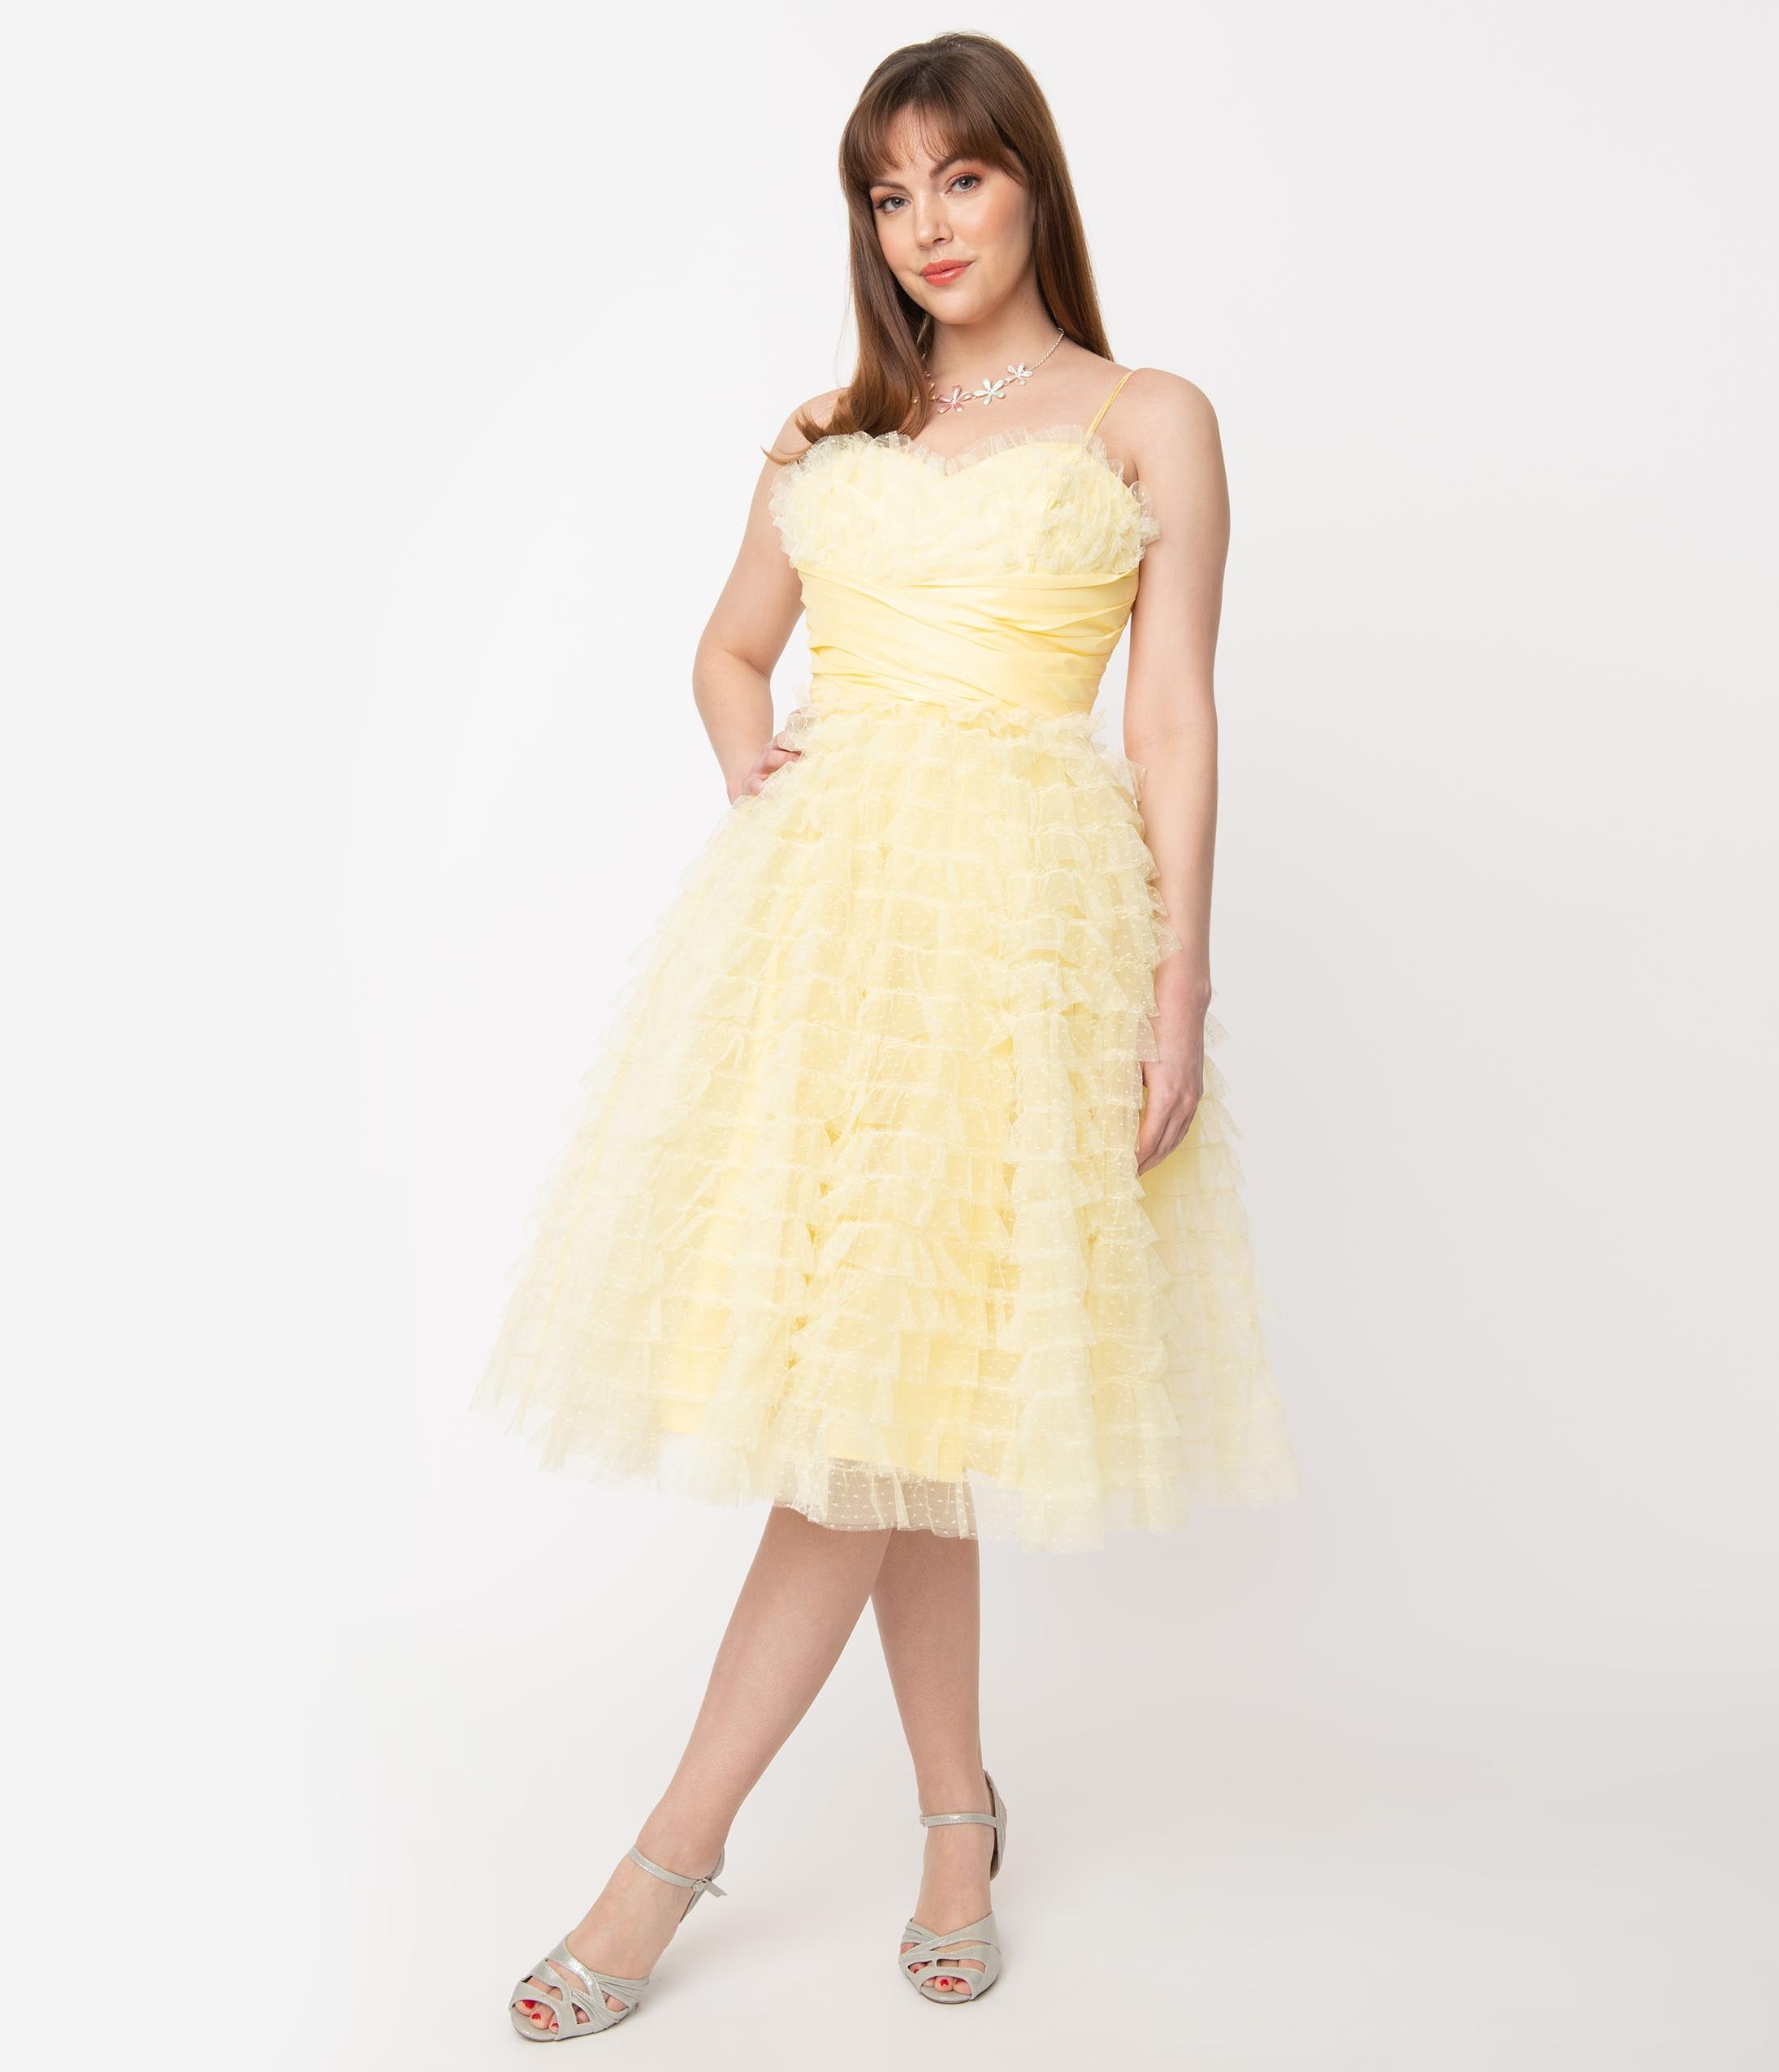 80s Dresses | Casual to Party Dresses Unique Vintage 1950S Yellow Ruffled Tulle Cupcake Swing Dress $110.00 AT vintagedancer.com